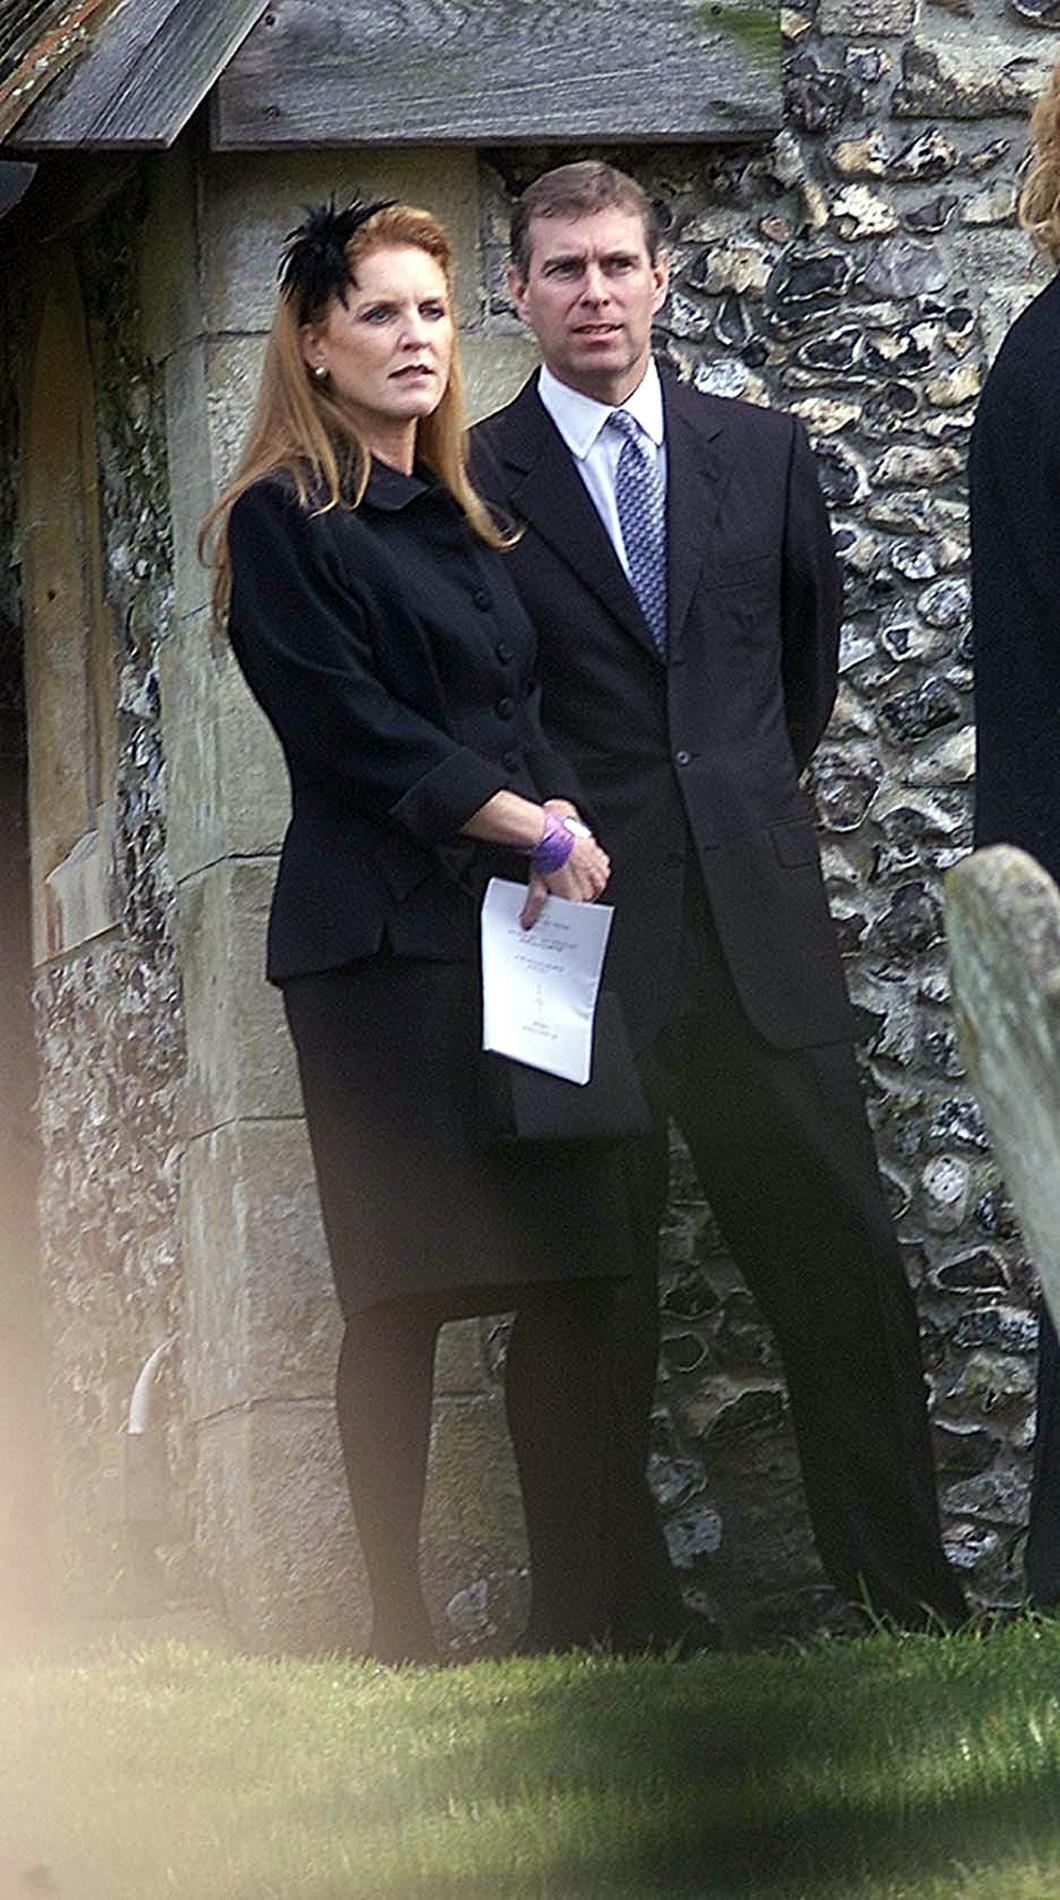 The Duke and Duchess of York arriving at All Saints Church in Odiham in Hampshire, for the  Service of Thanksgiving and funeral  of Major Ron Ferguson.